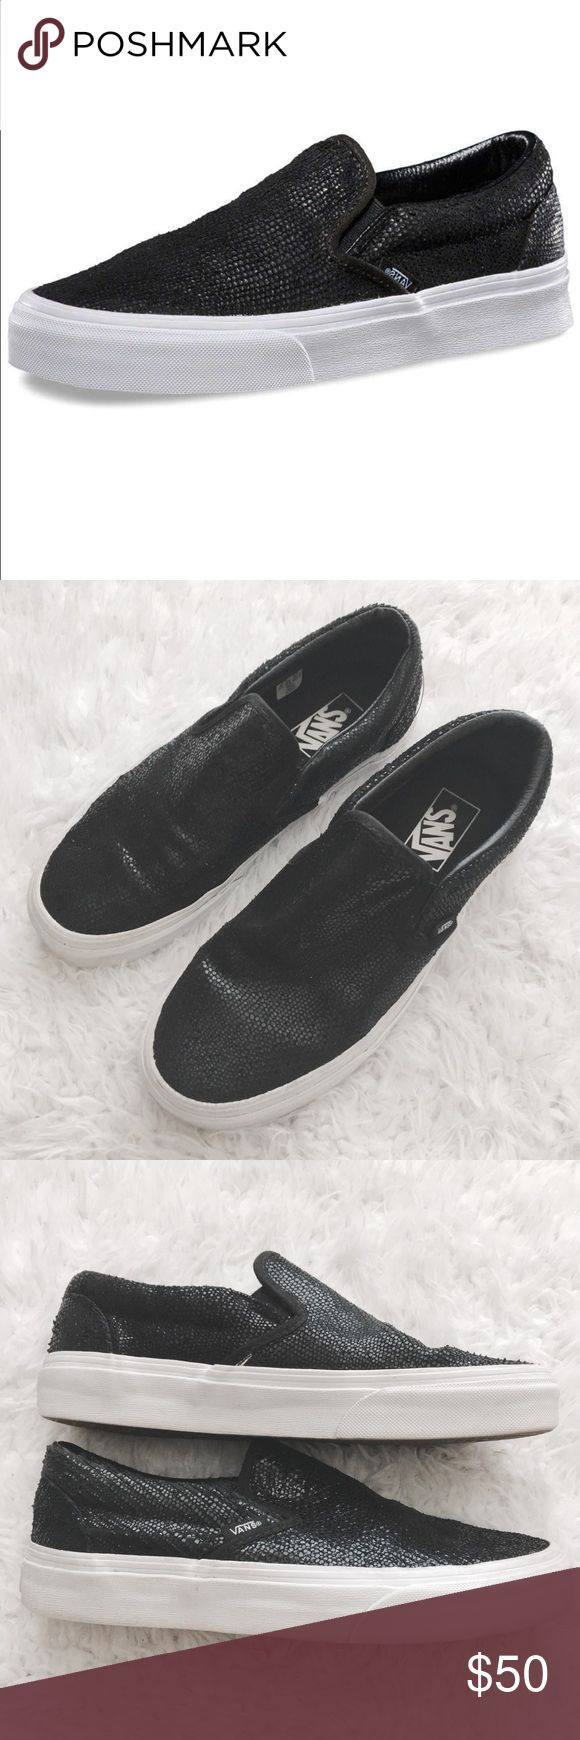 Vans Pebble Snake Classic Slip On Sneaker Unisex women's 7.5 & mens 6. Shiny black snakeskin texture. Excellent pre-owned condition.   •USE OFFER FEATURE TO NEGOTIATE  •BUNDLE TO SAVE  •NO OUTSIDE TRANSACTIONS •NO TRADES Vans Shoes Sneakers